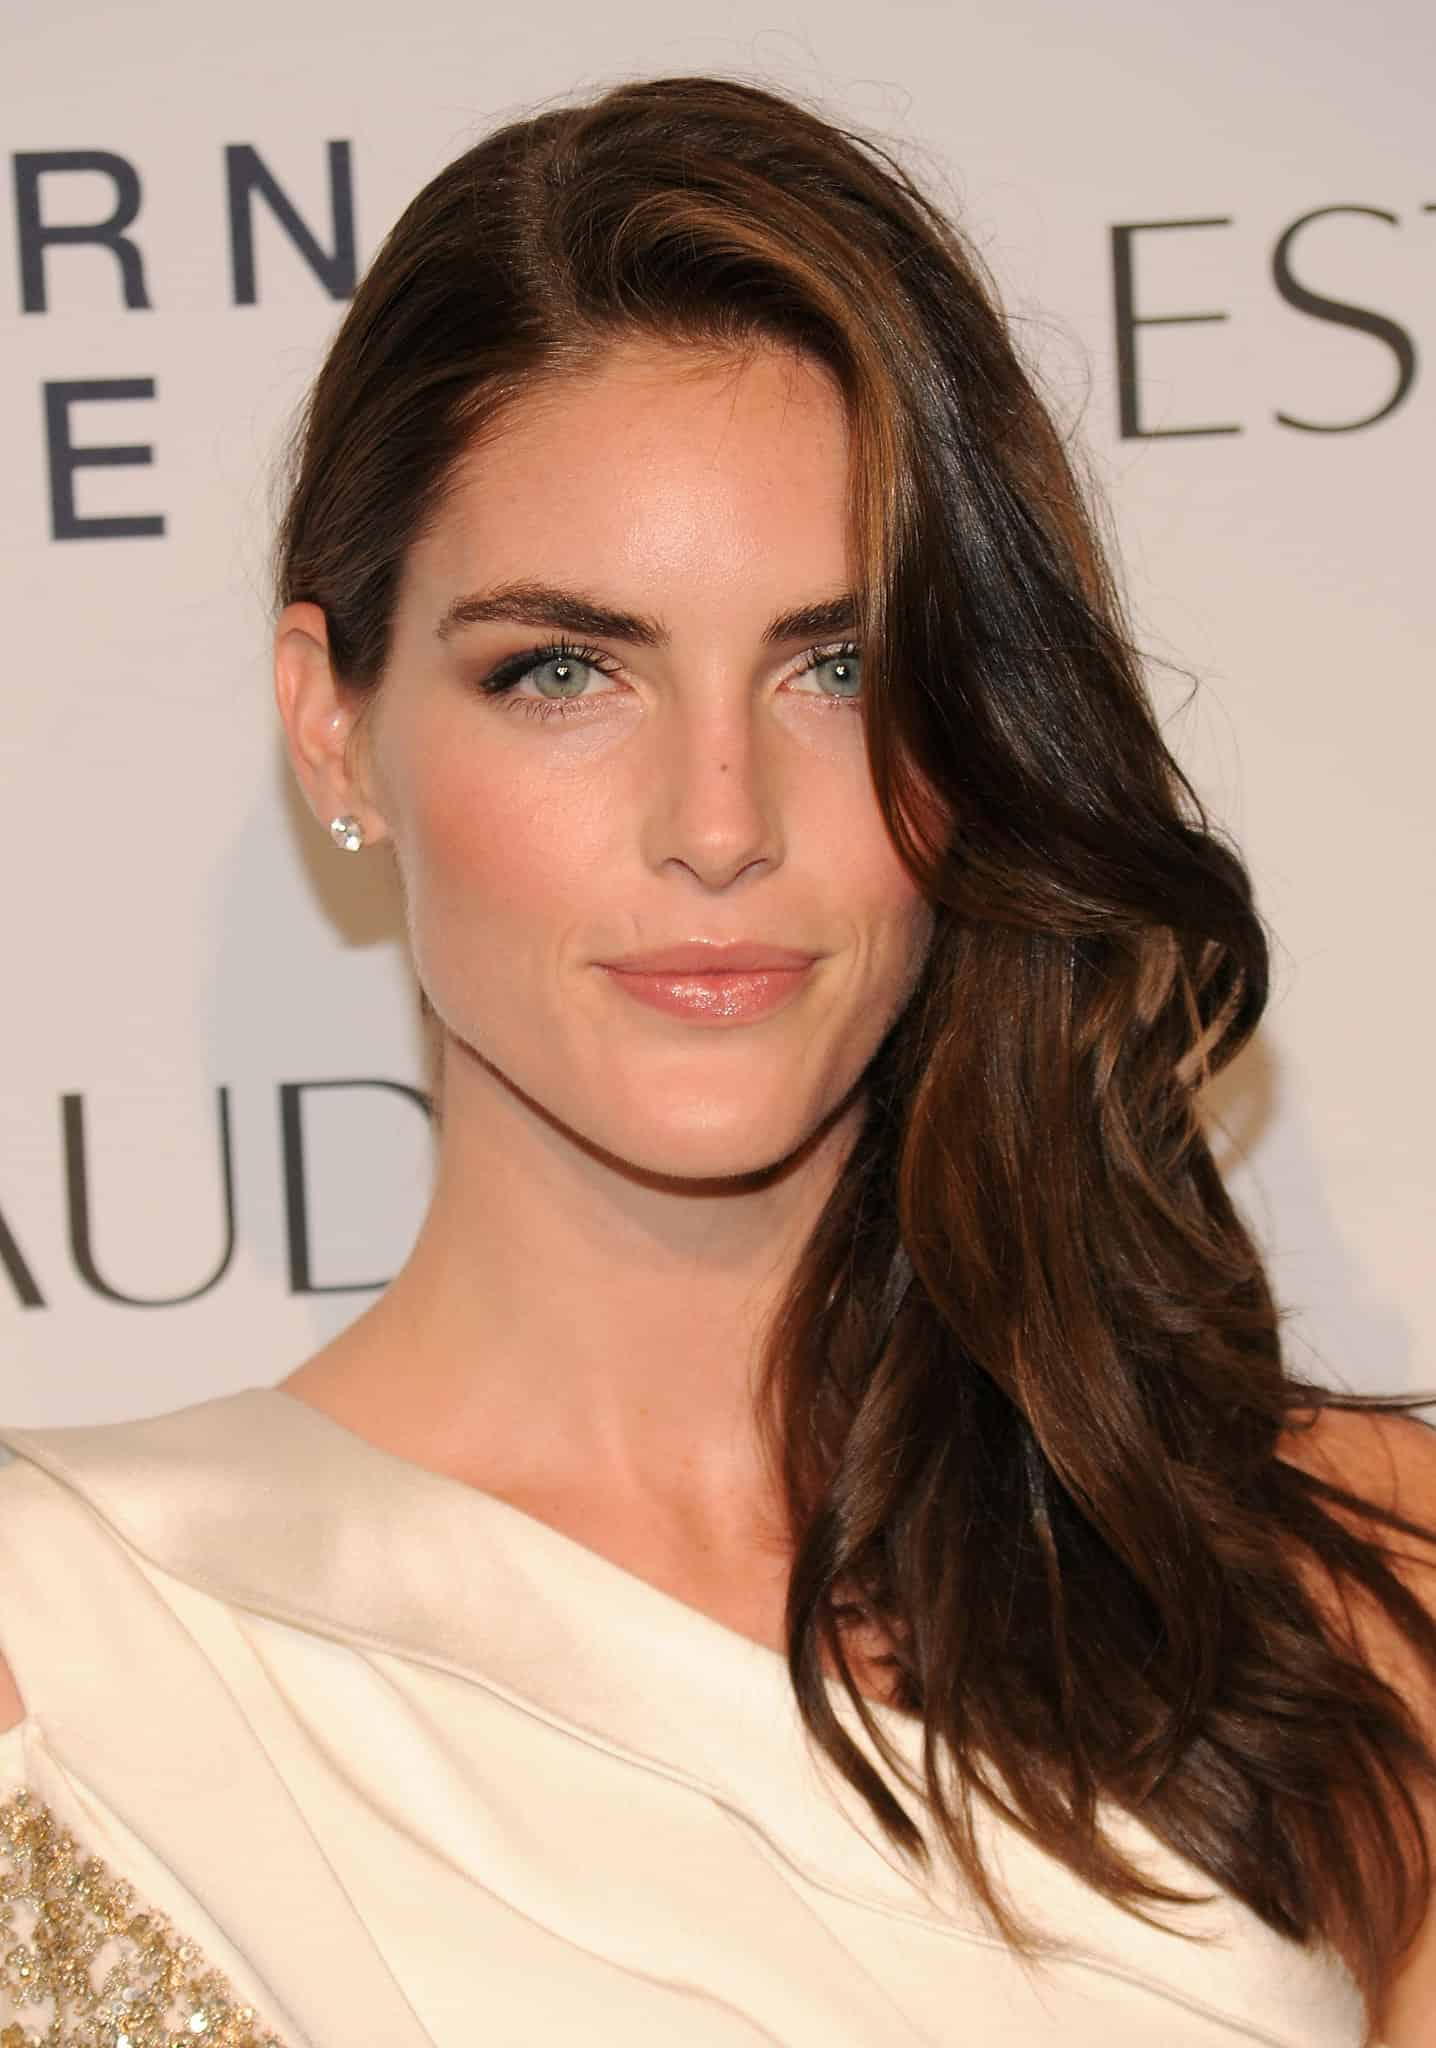 Hilary-Rhoda-positively-glowing-plenty-blush-glowing